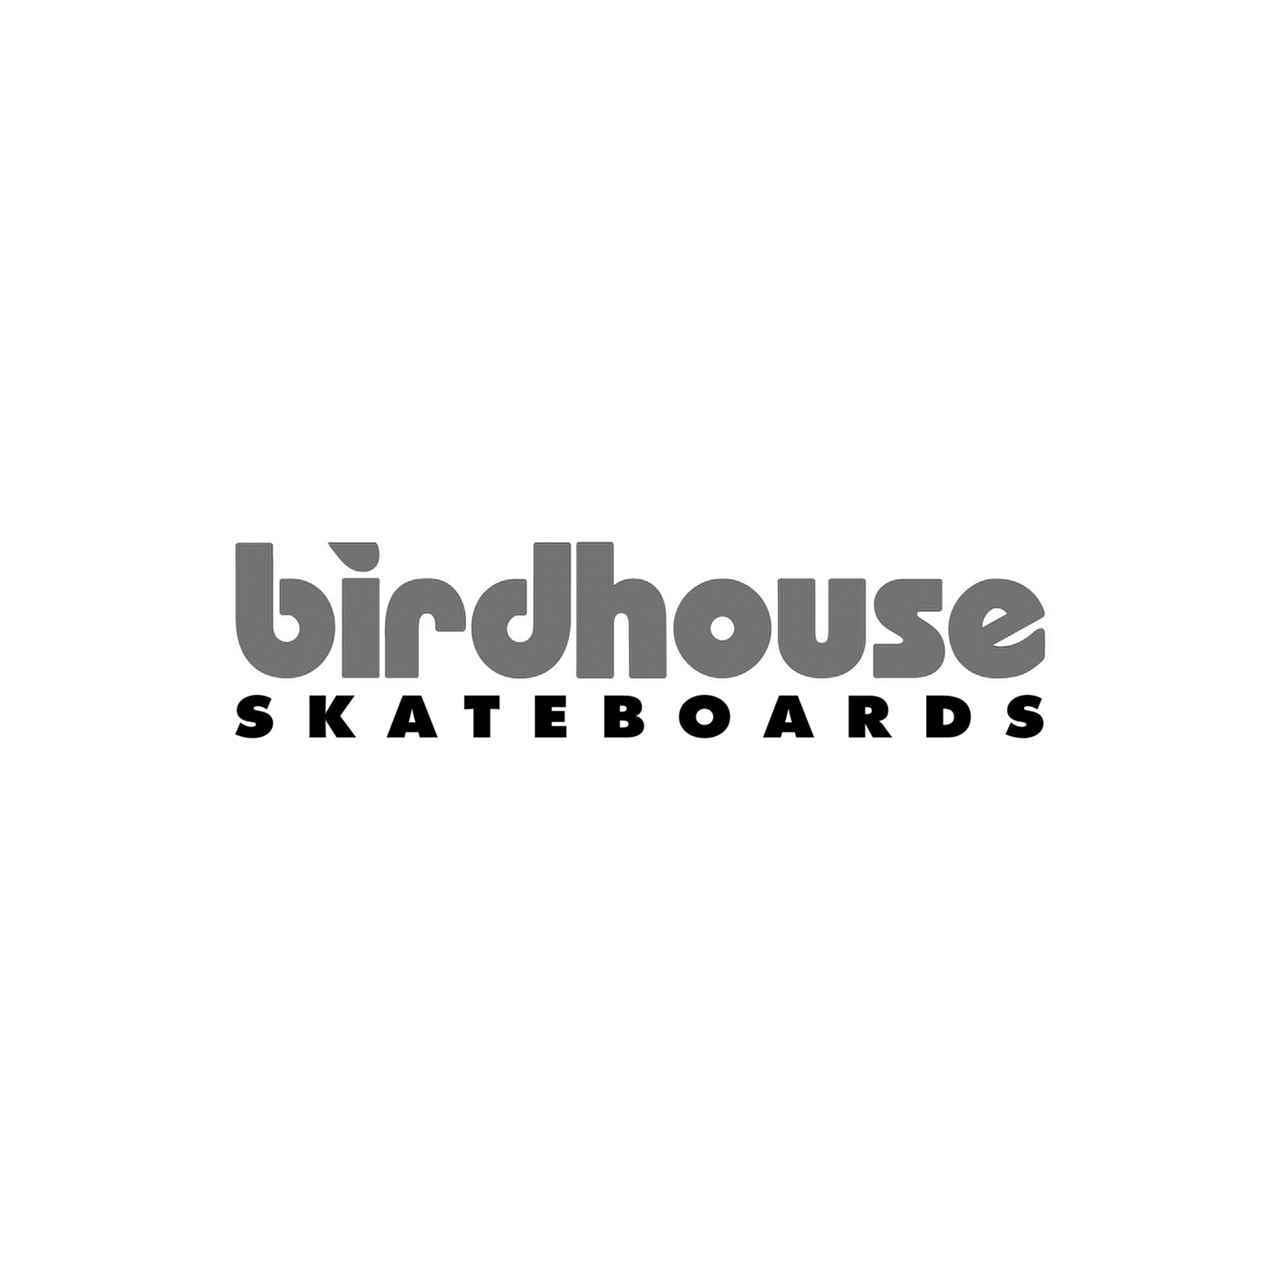 Birdhouse Skateboards Vinyl Decal.